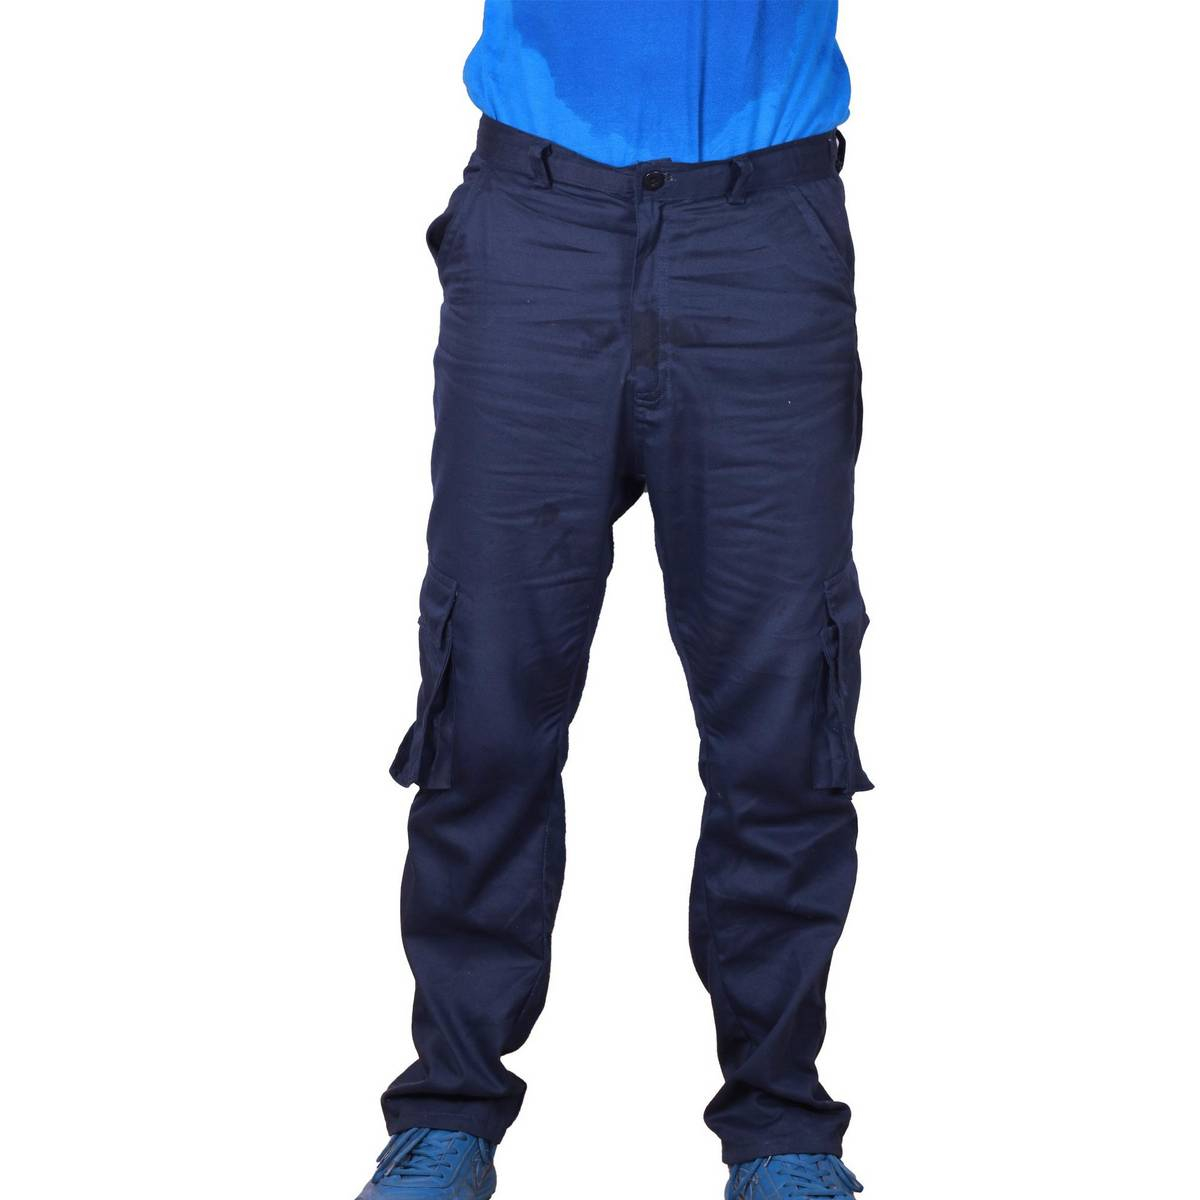 Men's New Fashion 6 Pockets Cargo Trousers - Cargo Pants